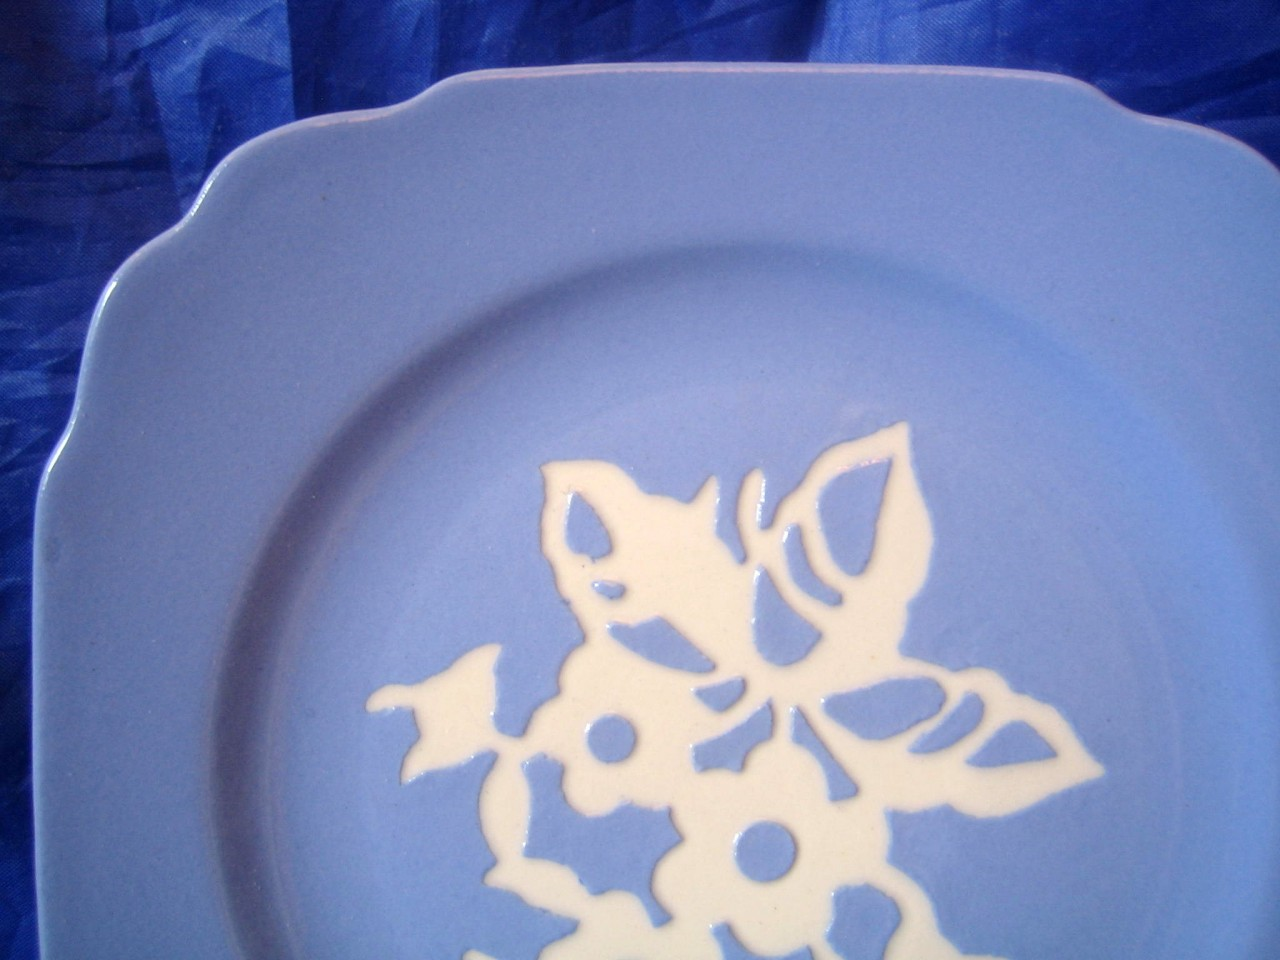 Periwinkle Blue Cream Cameo Stencil Flowers Square Vintage Plate Edge www.DecorativeDishes.net